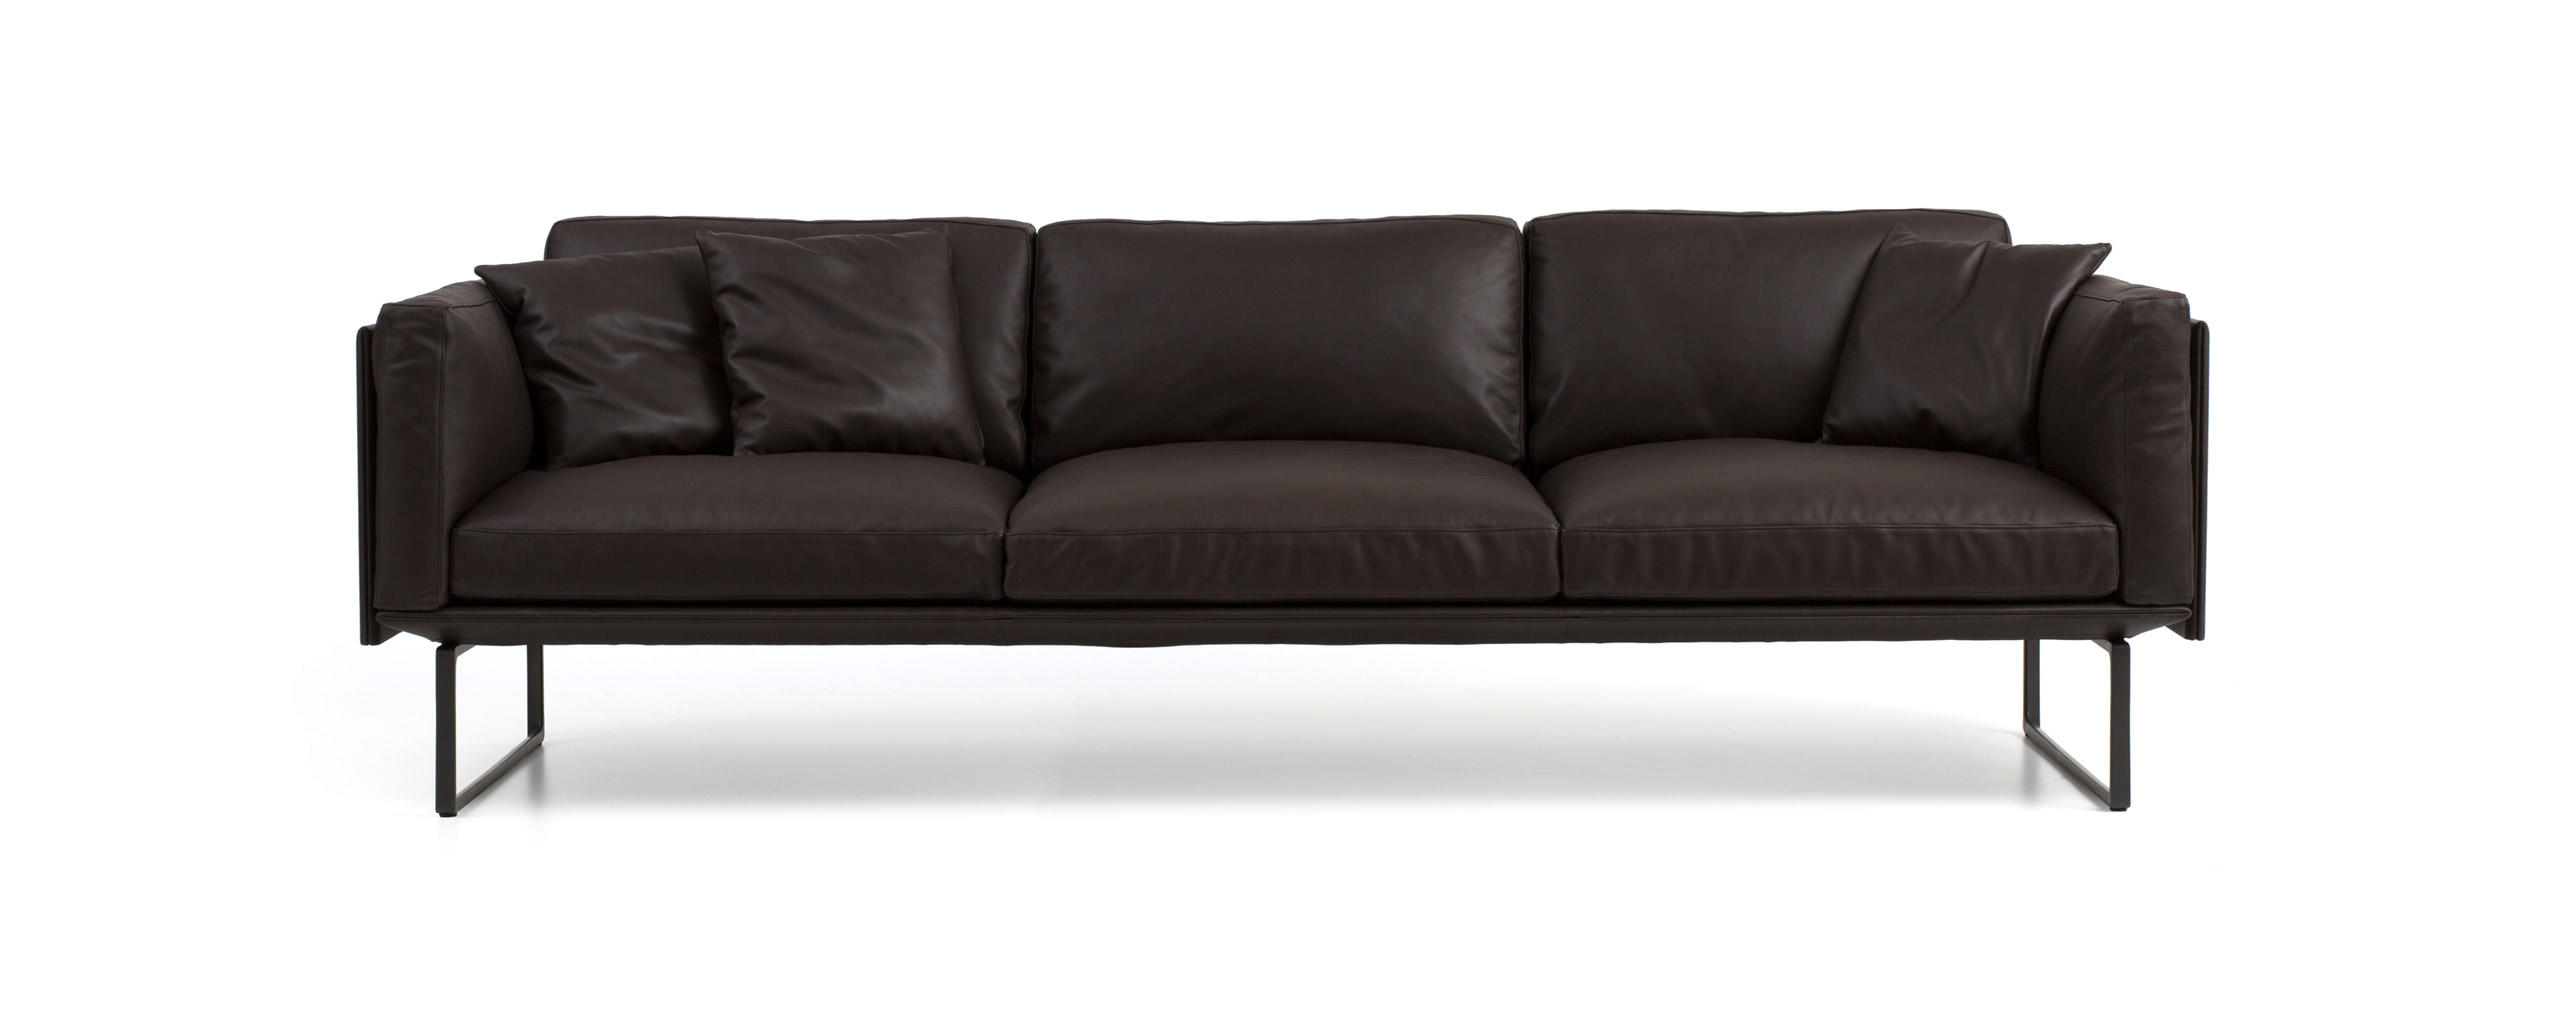 Fantastic Cassina Sofa 84 In Living Room Sofa Inspiration with Cassina Sofa